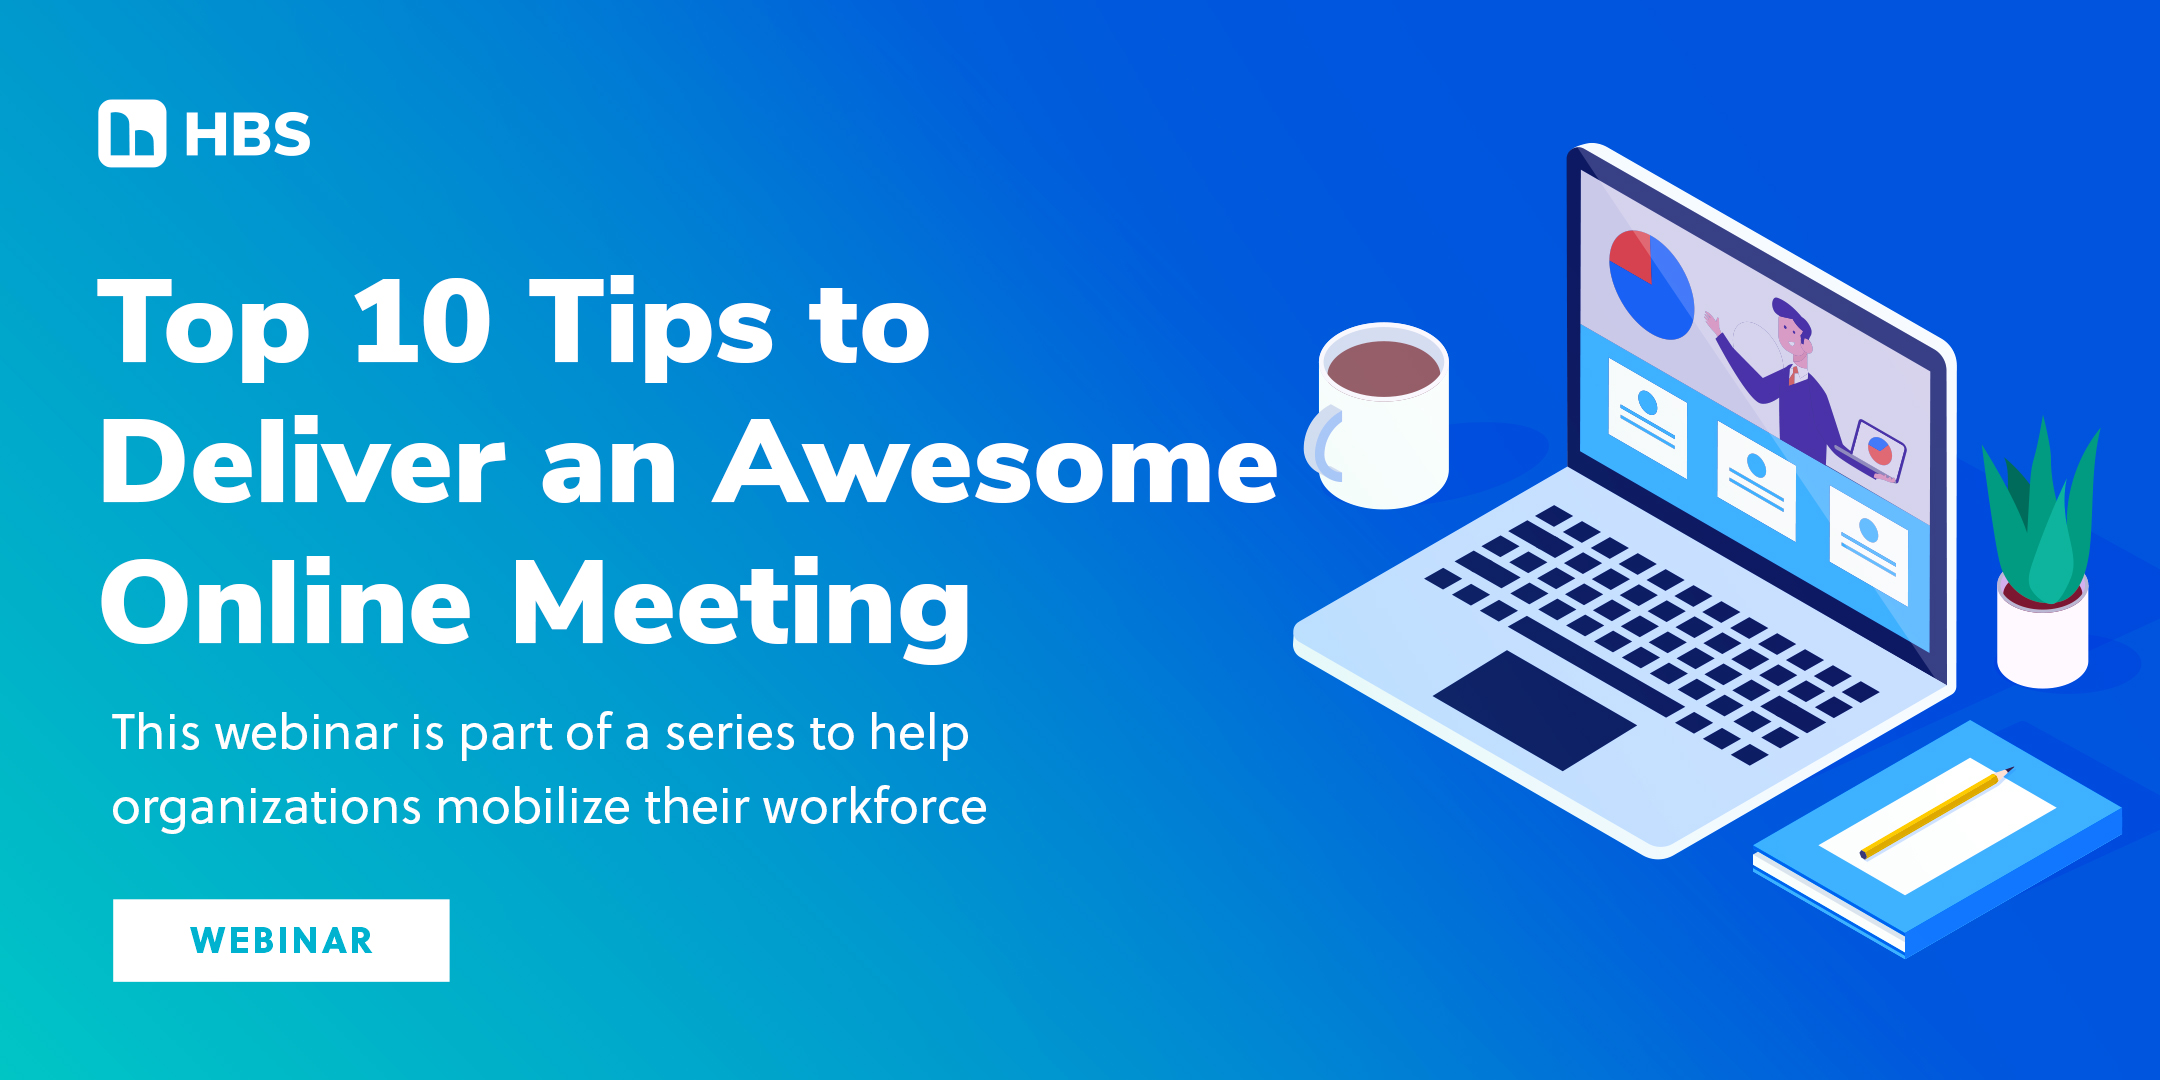 HT-Deliver-a-Great-Meeting-Hero-Image-3-19-2020b